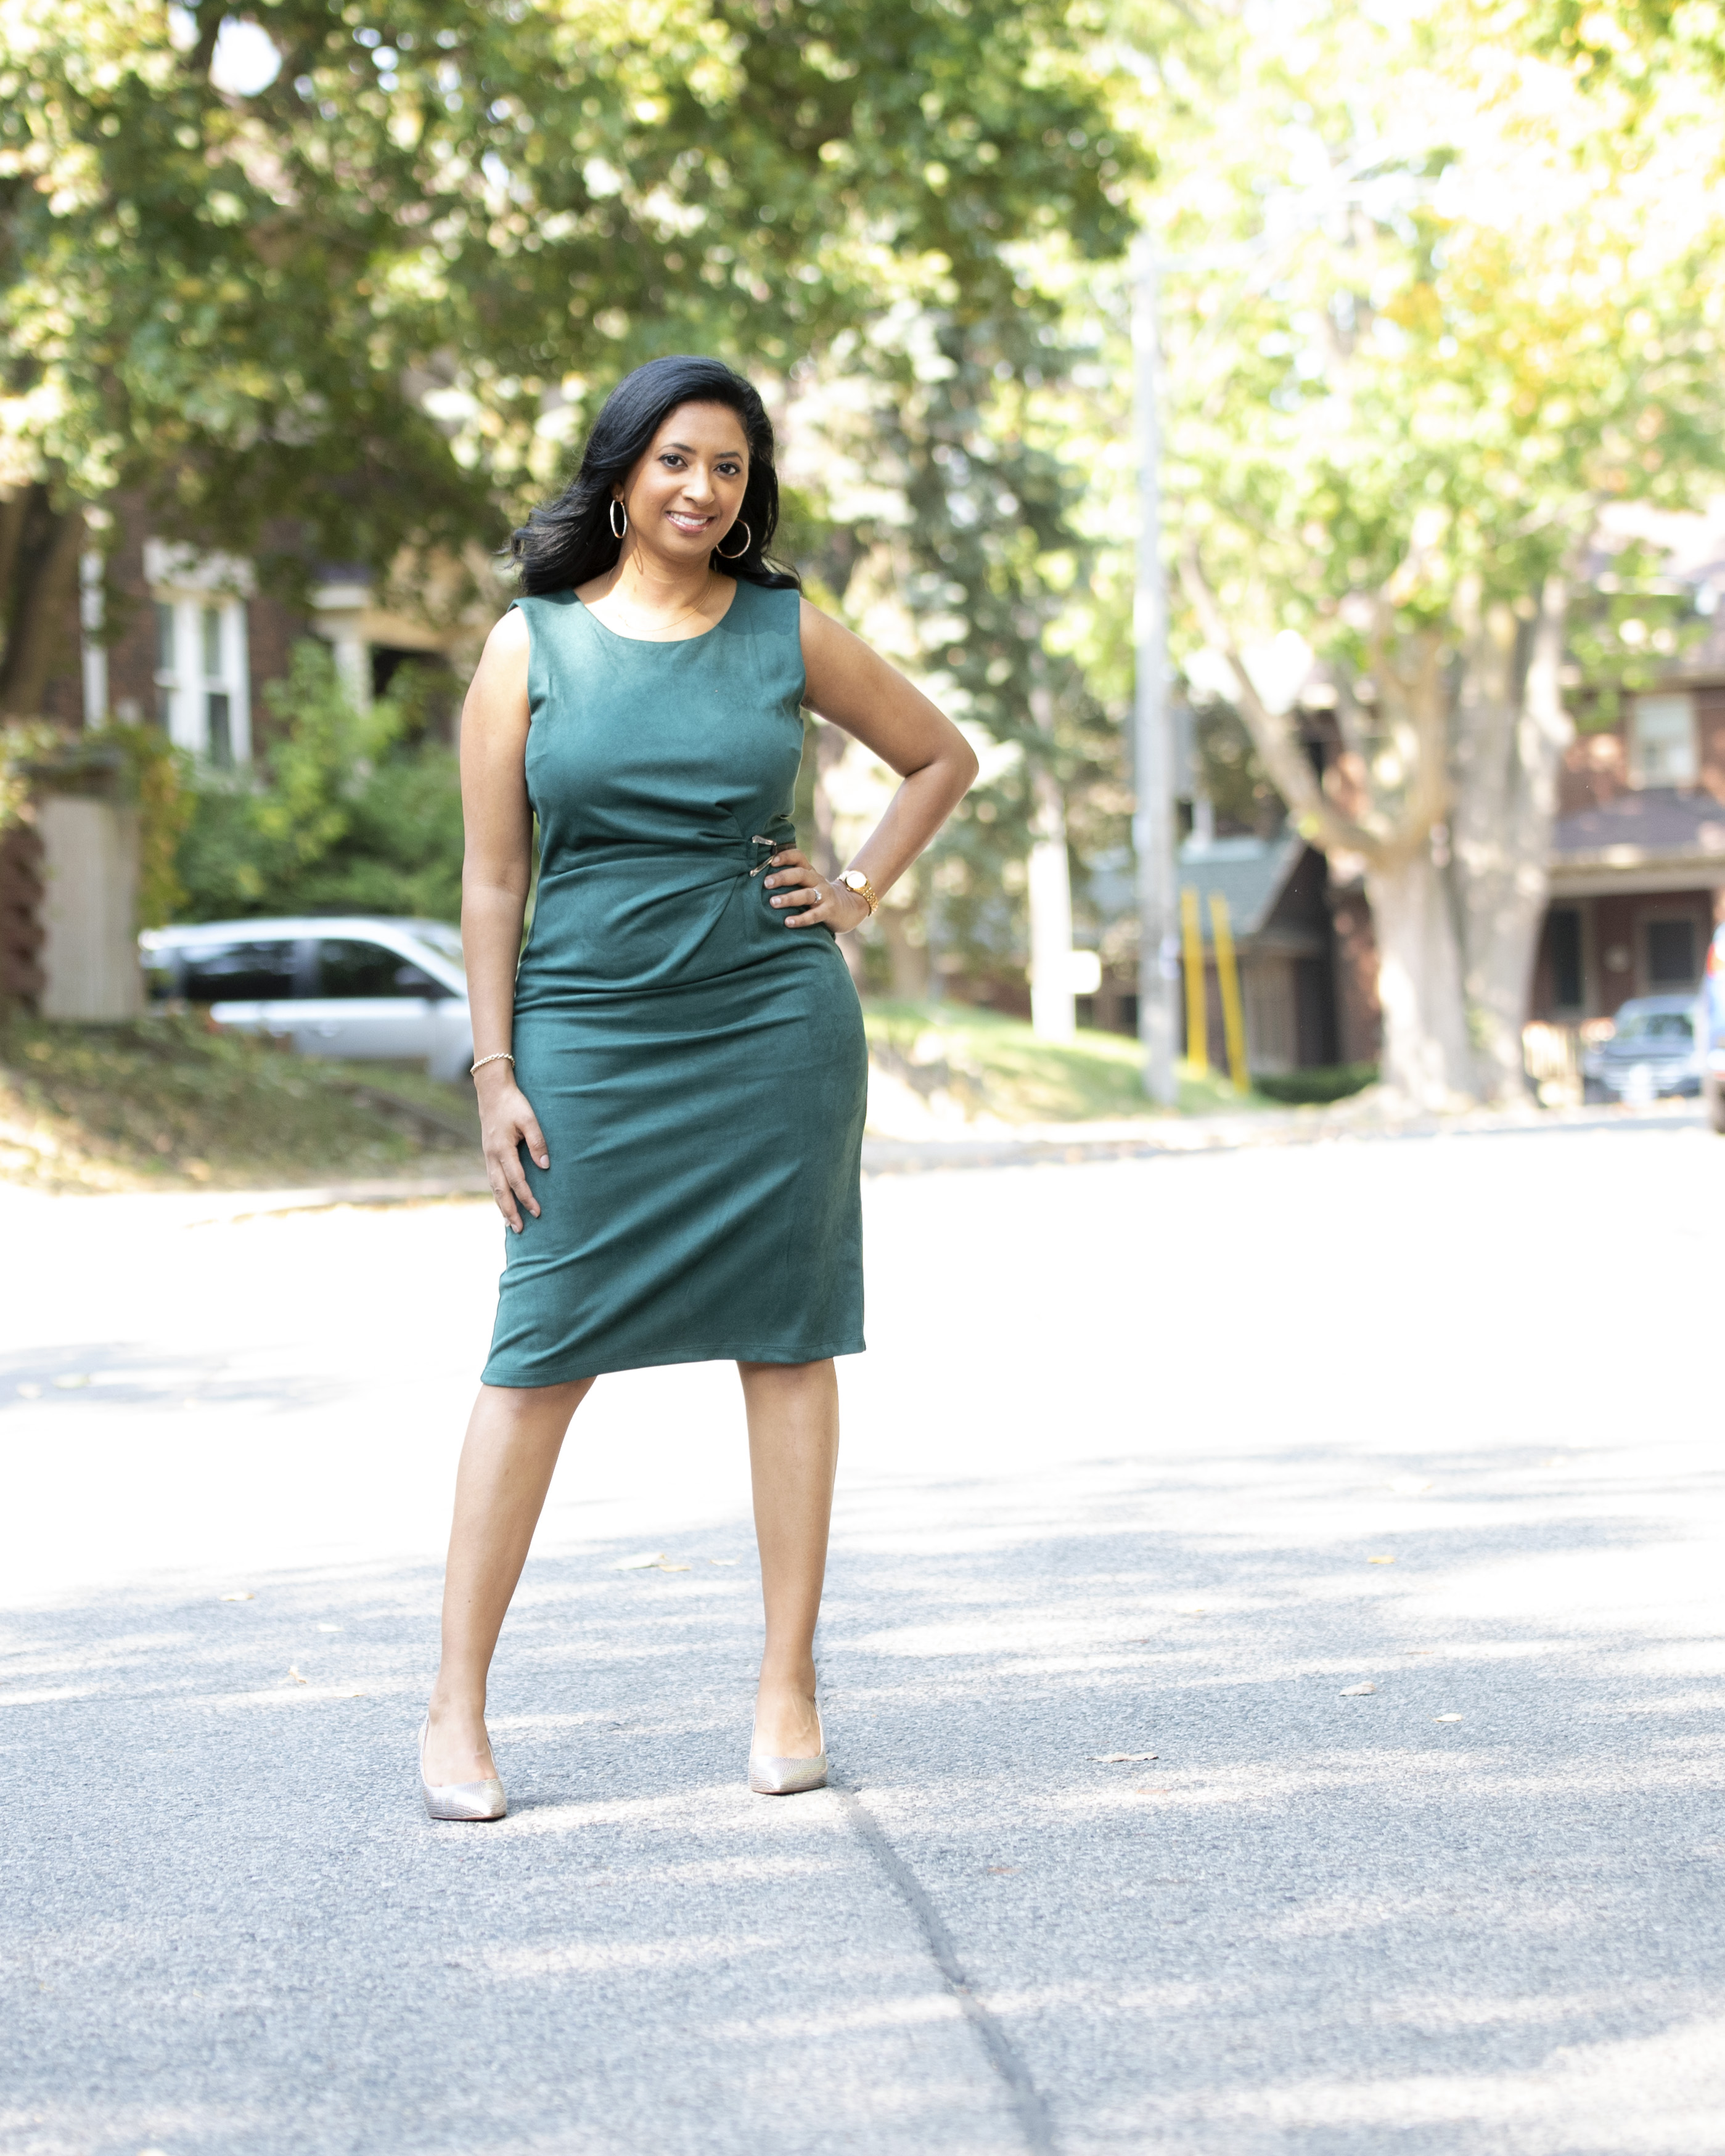 Jennifer Singh, CEO of She's Newsworthy Media